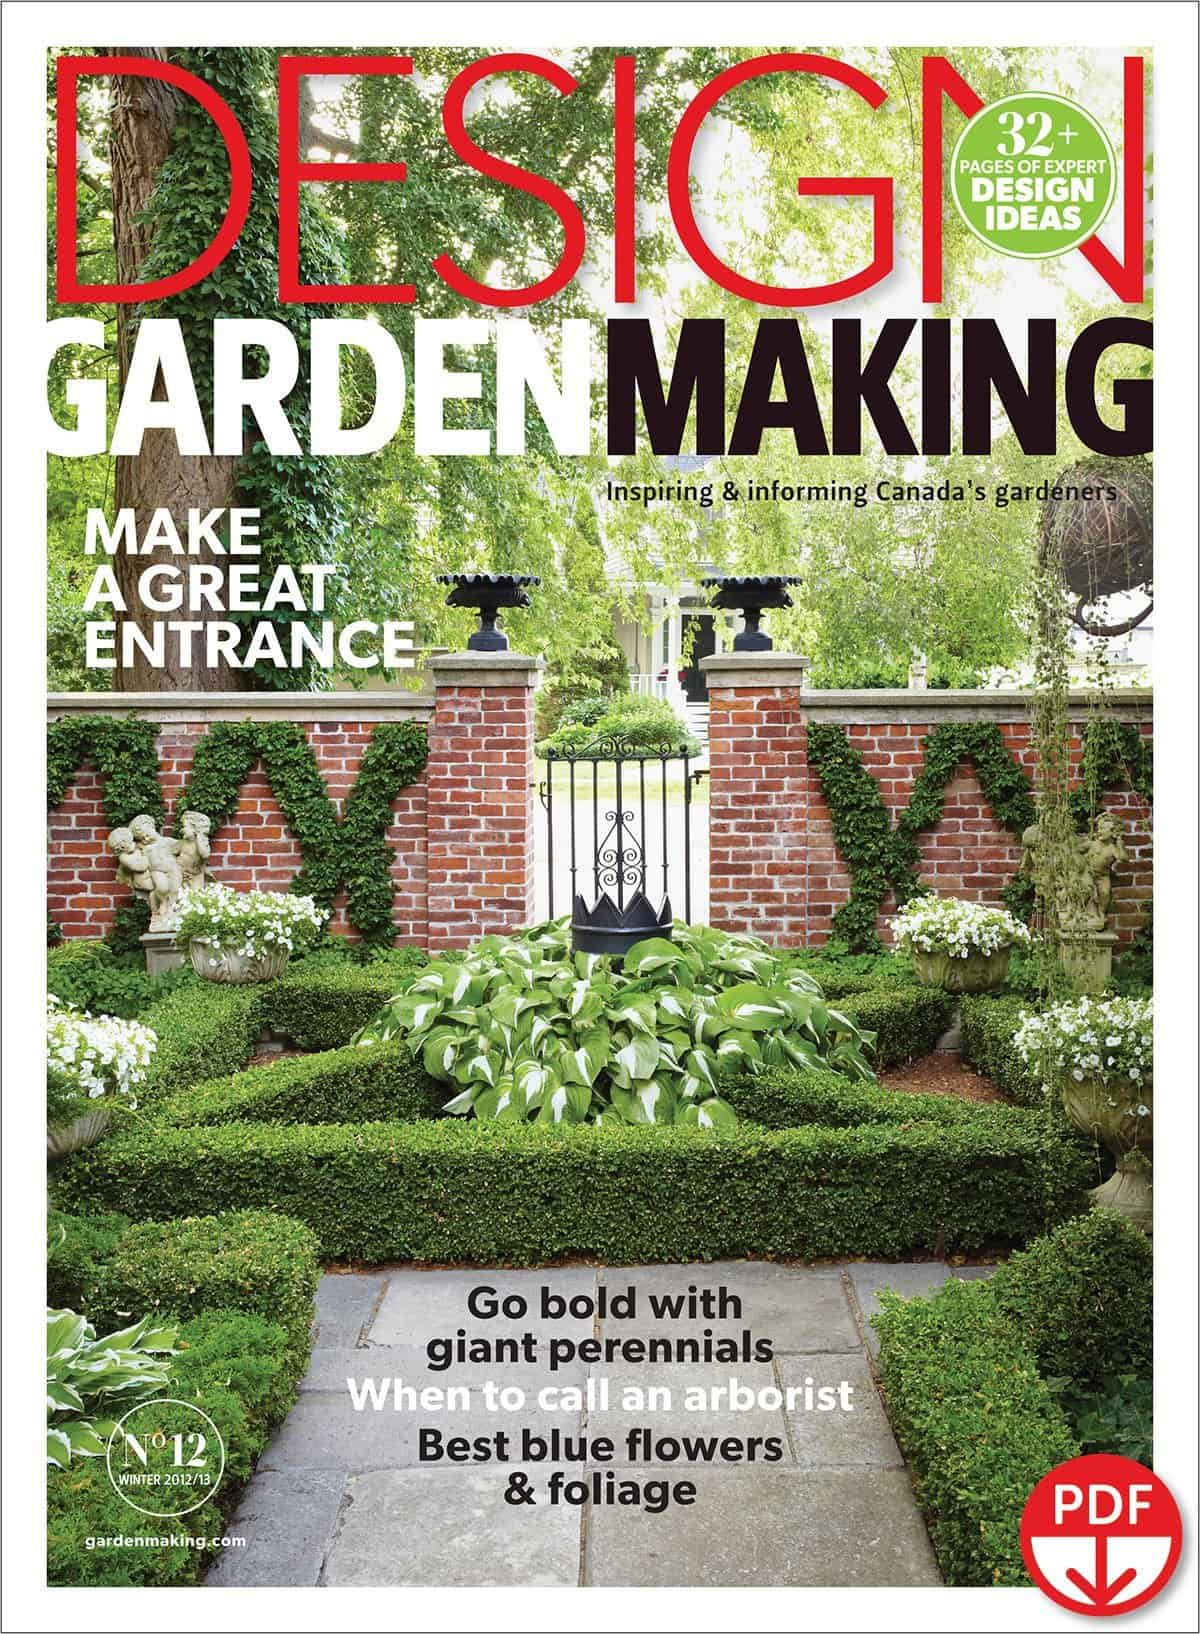 We're making a design statement with the cover of our 3rd annual Garden Design Issue, No. 12 of Garden Making magazine.